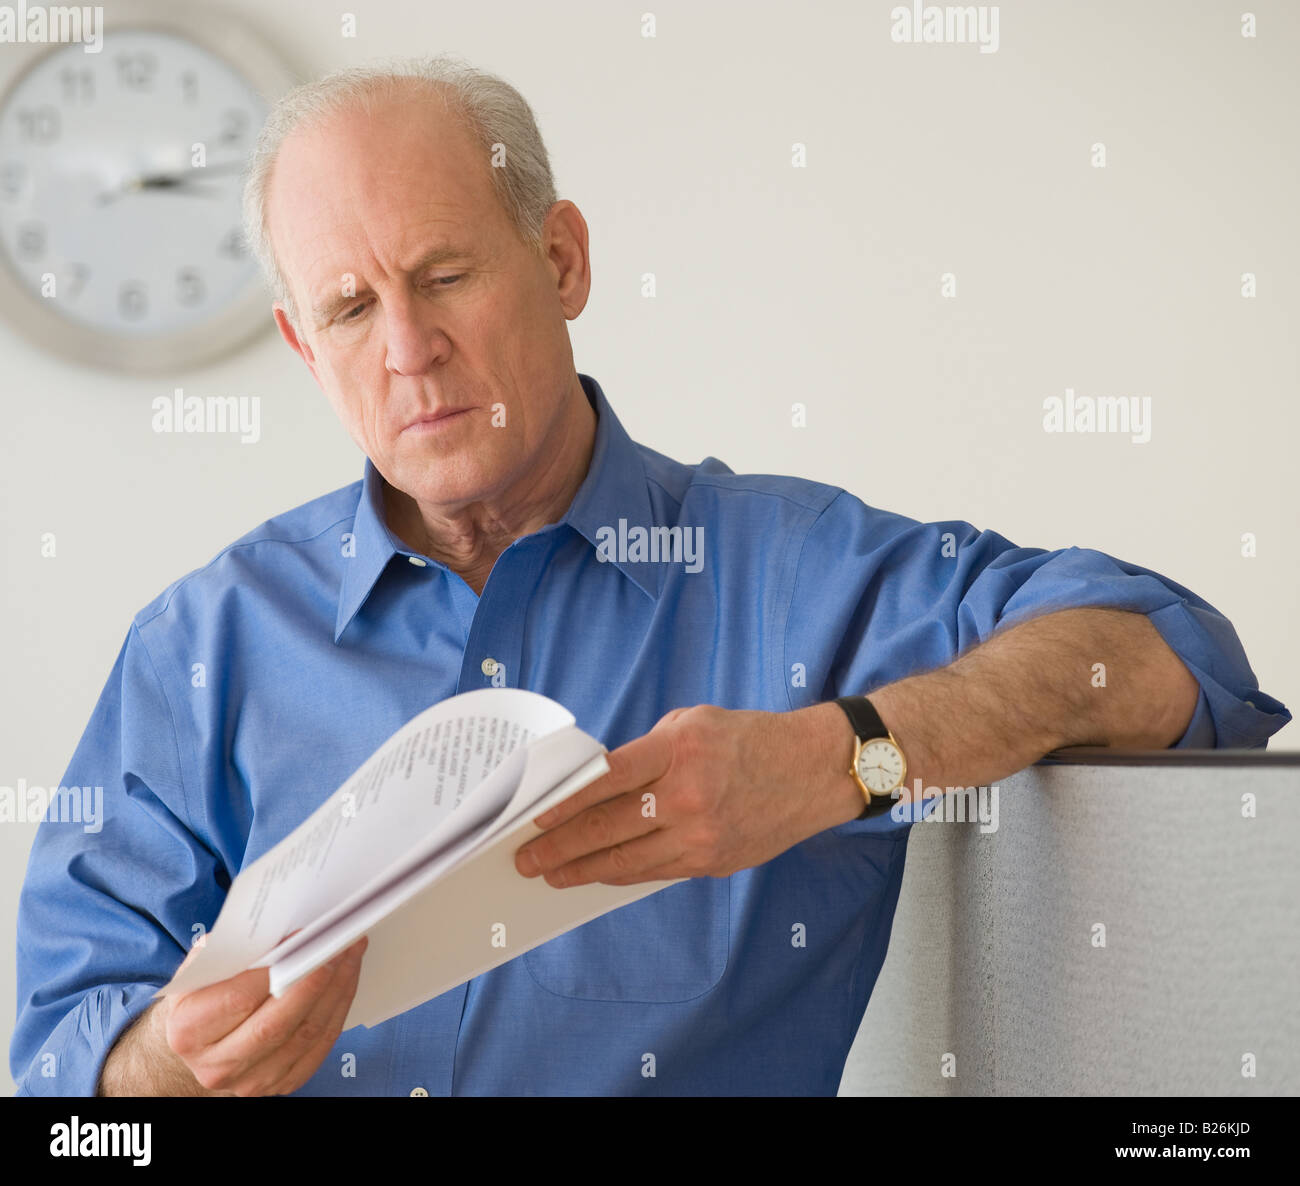 Senior businessman reading paperwork - Stock Image